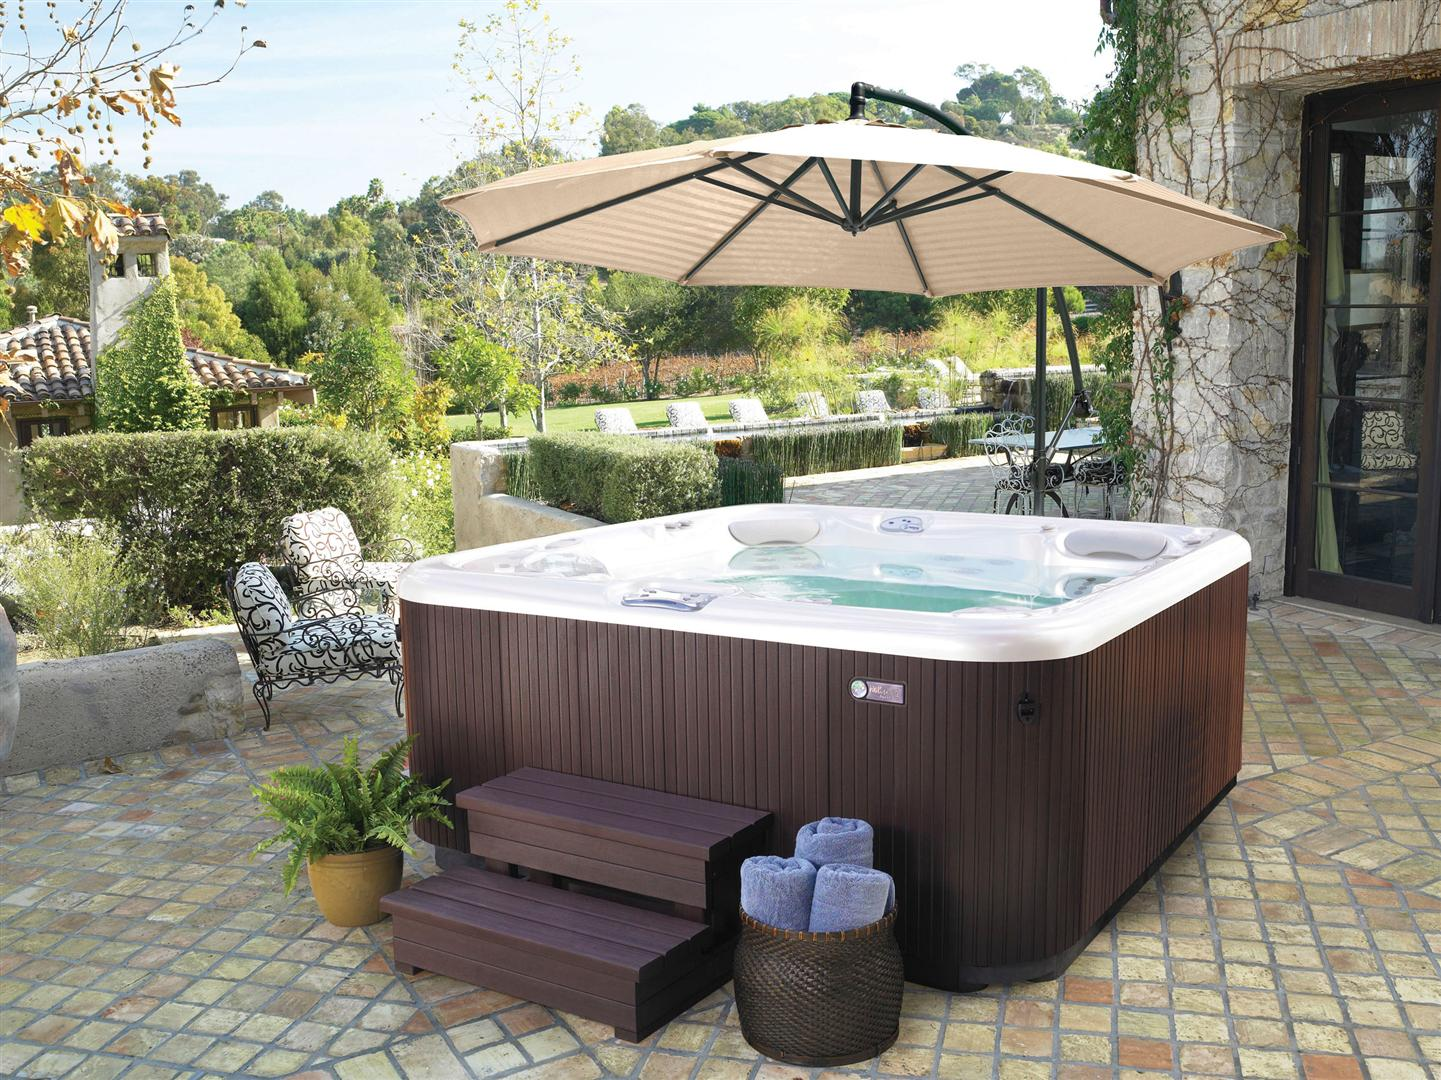 Let Us Help You Discover The Perfect Hot Tub For Come By And Visit Our Spa Showroom Today We Have Many Styles Of Above Ground Pools